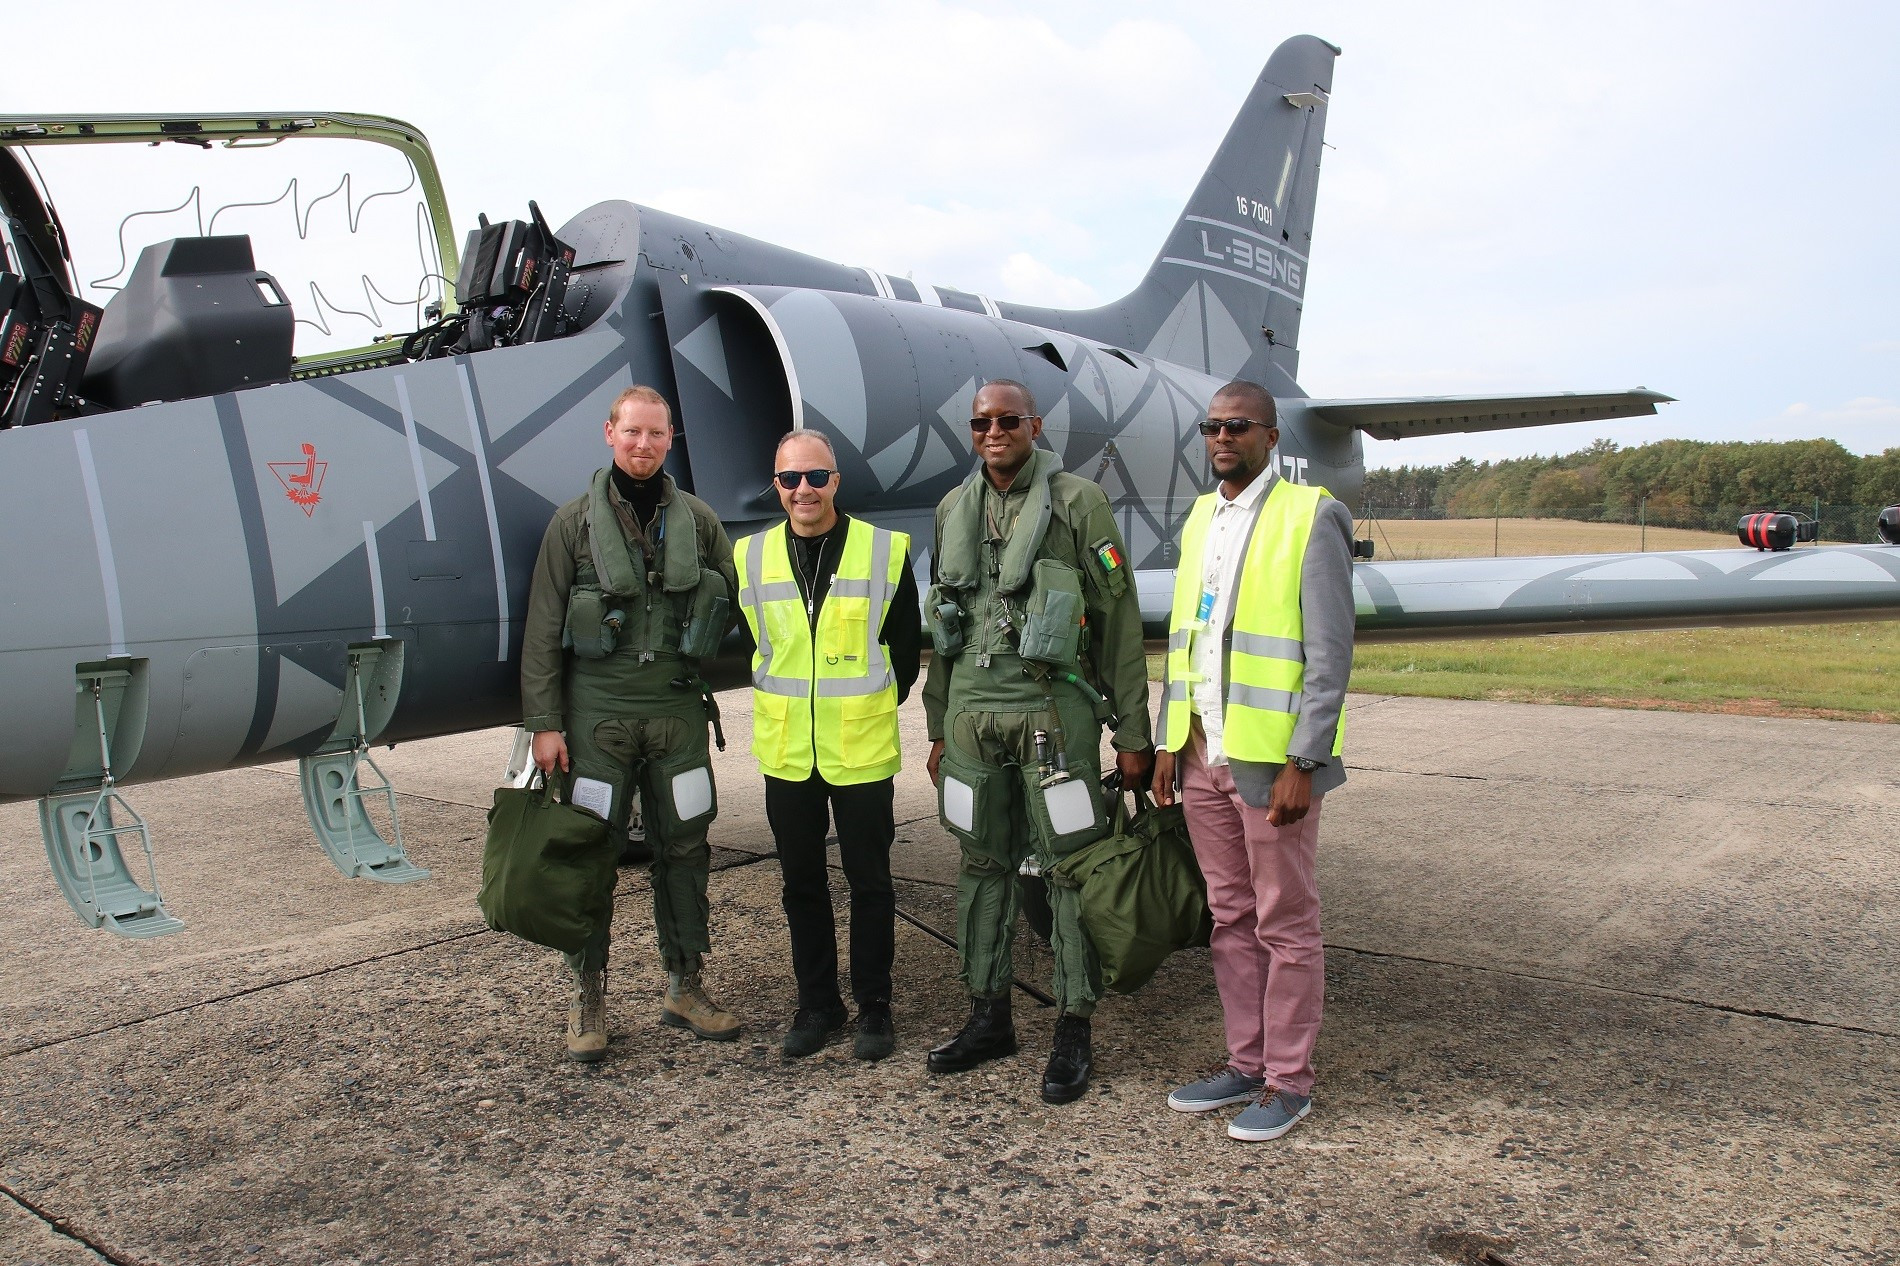 Senegalese Chief of Air Force flies L-39NG